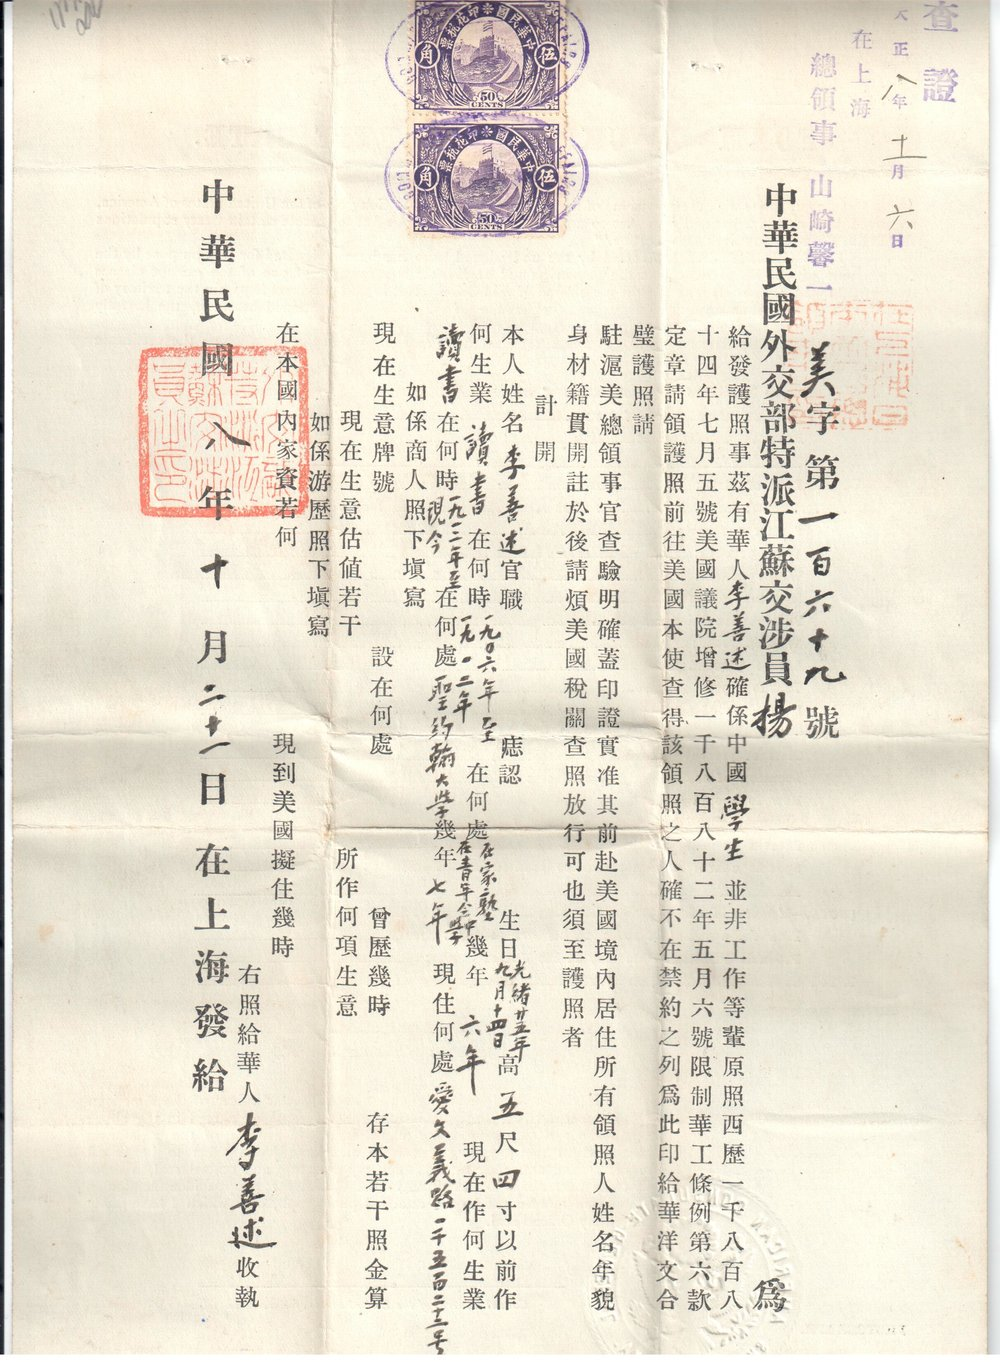 Document issued by the Foreign Affairs Office of the Chinese government certifying Zen Zuh Li's student status, Oct. 21, 1919. Images in this row courtesy Lillian Li.